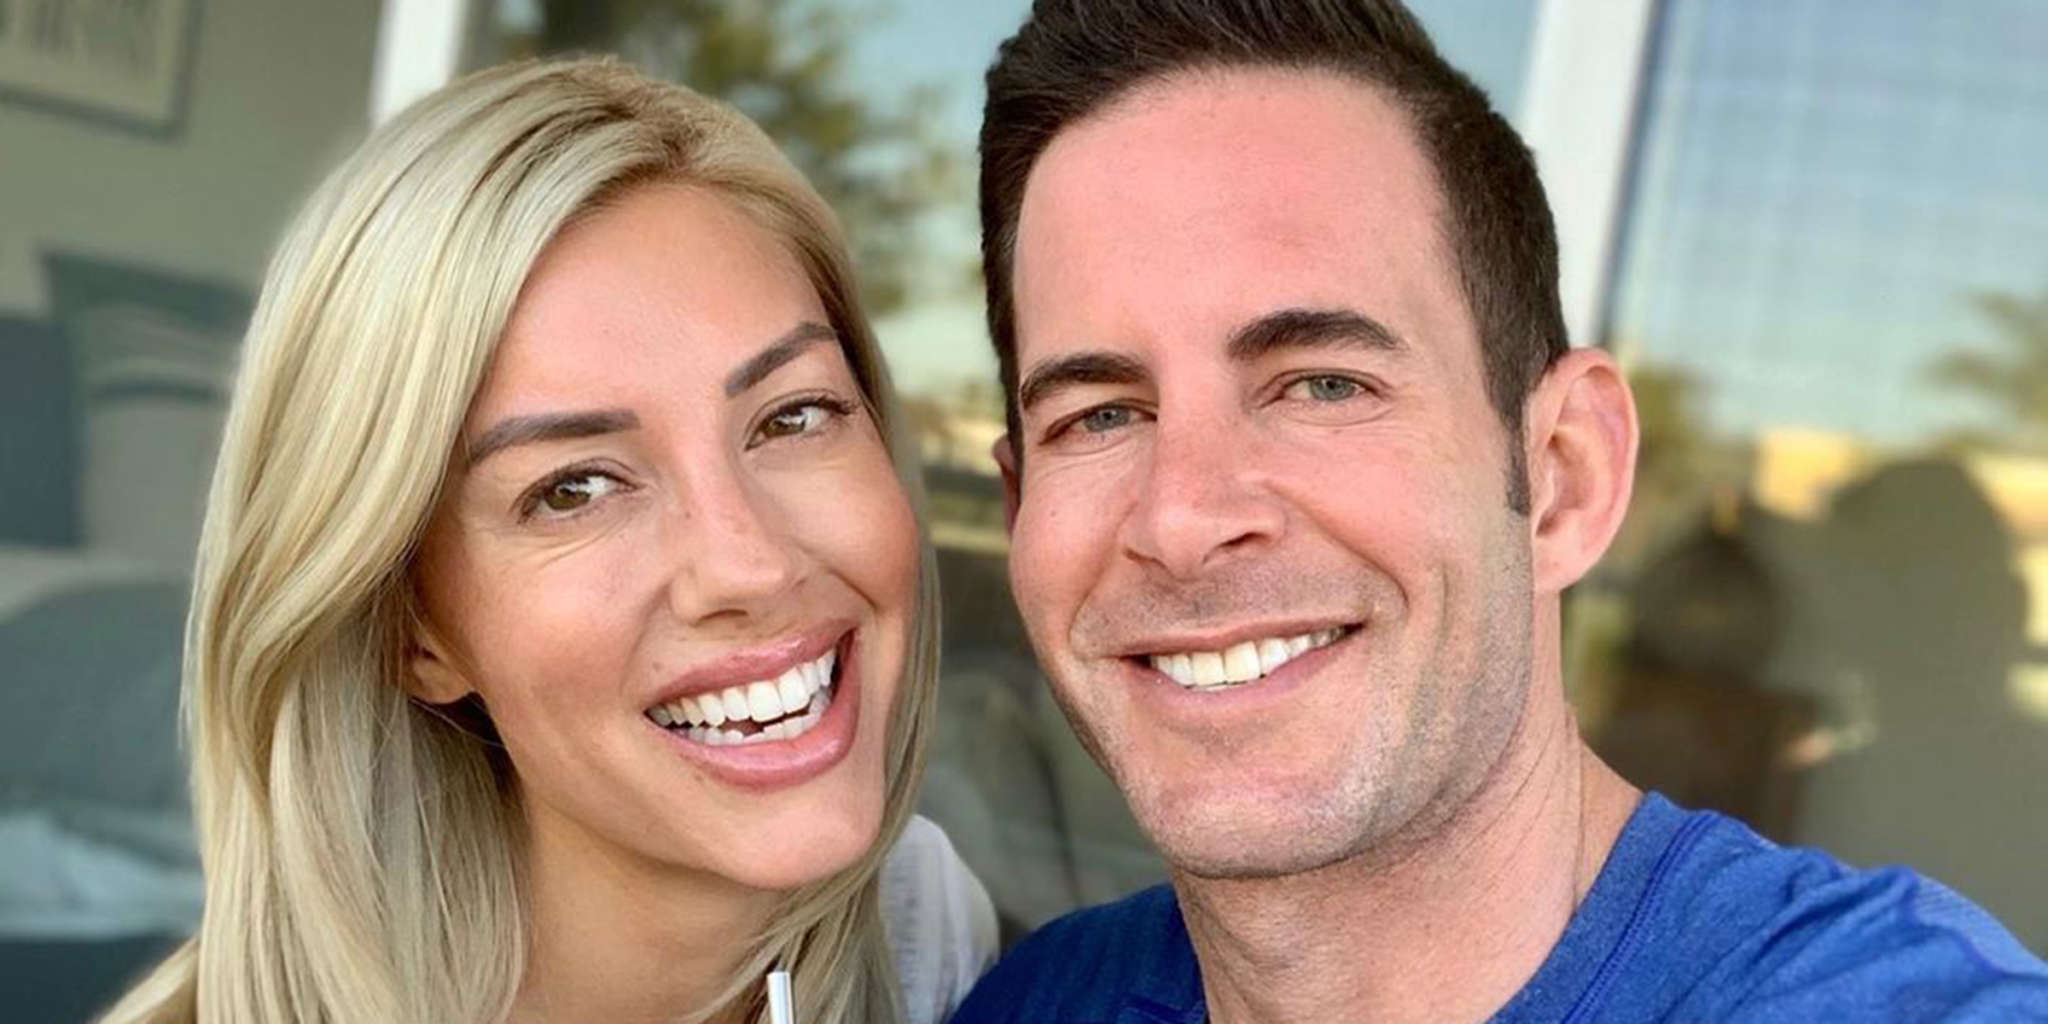 Tarek El Moussa Says He's 'So Excited About Life' With Fiancee Heather Rae Young!